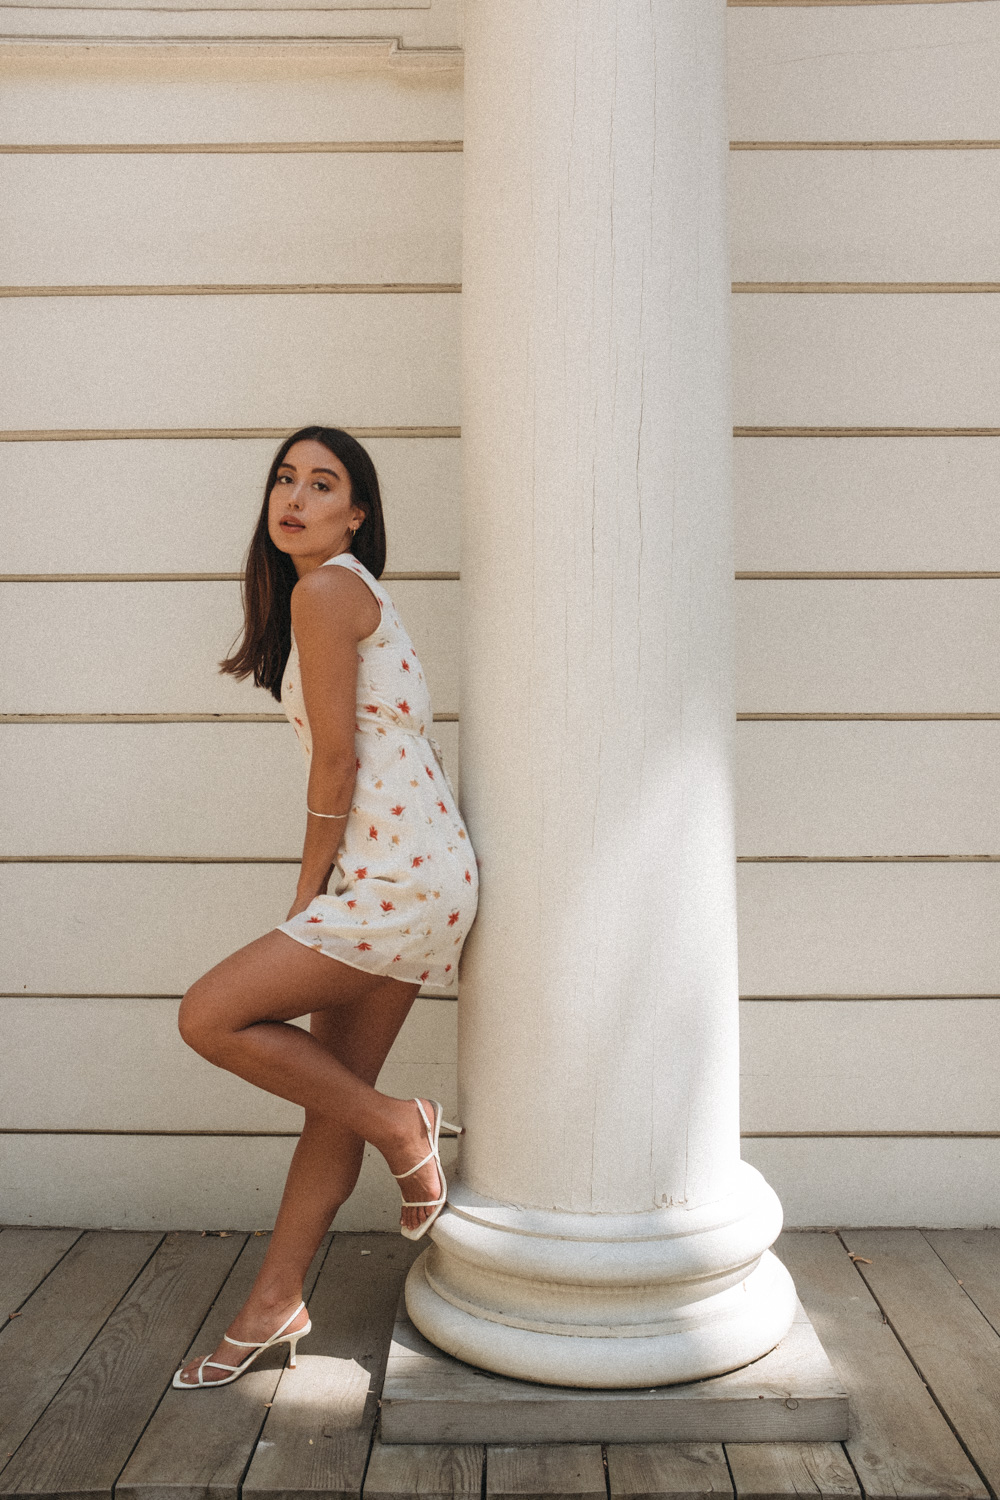 LOVE OR MONEY by Emily Tong wearing vintage floral mini dress and Zara heels